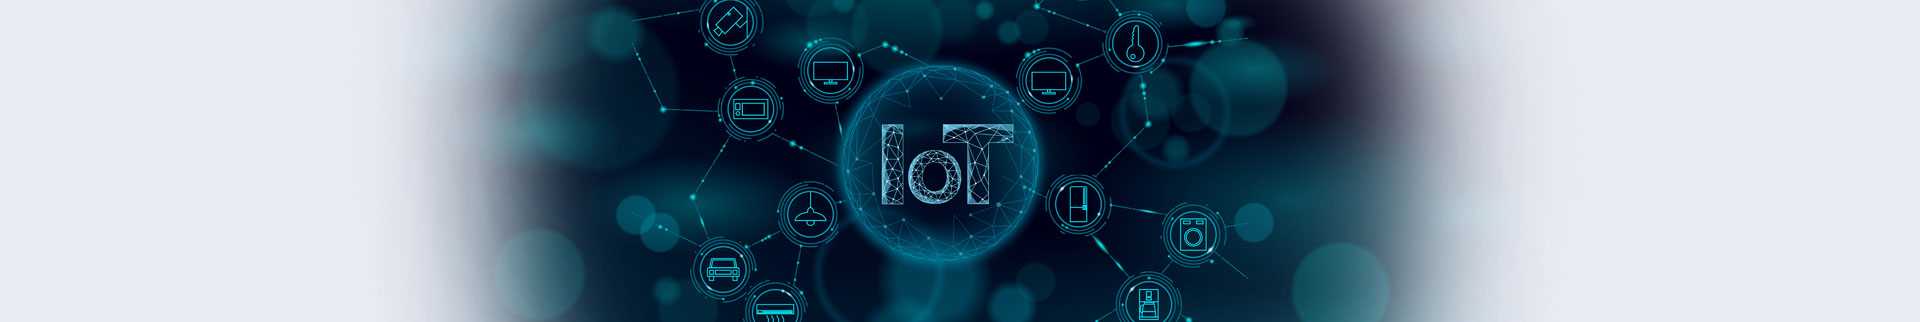 SD-WAN and IoT